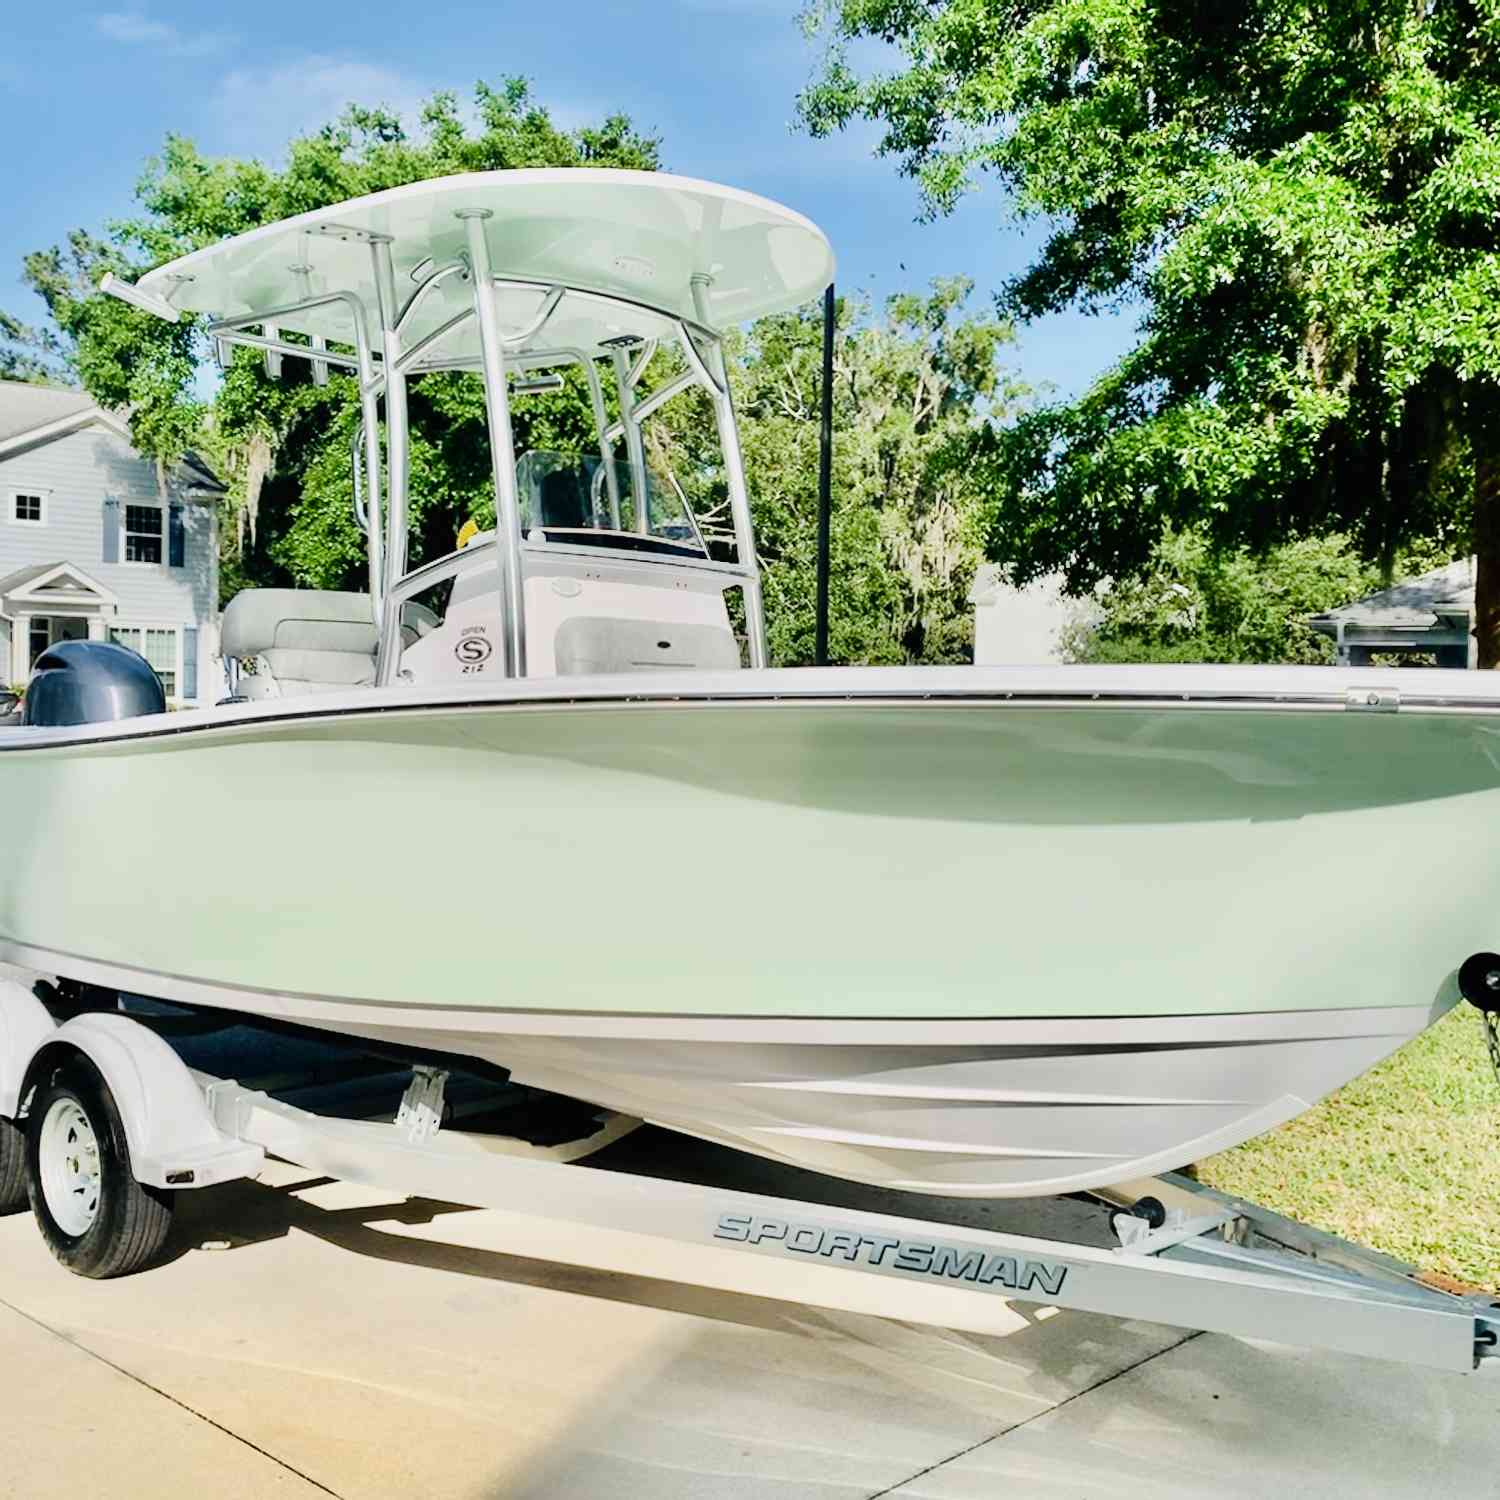 Title: AQUAHOLIC - On board their Sportsman Open 212 Center Console - Location: Jacksonville ,fl. Participating in the Photo Contest #SportsmanMay2020